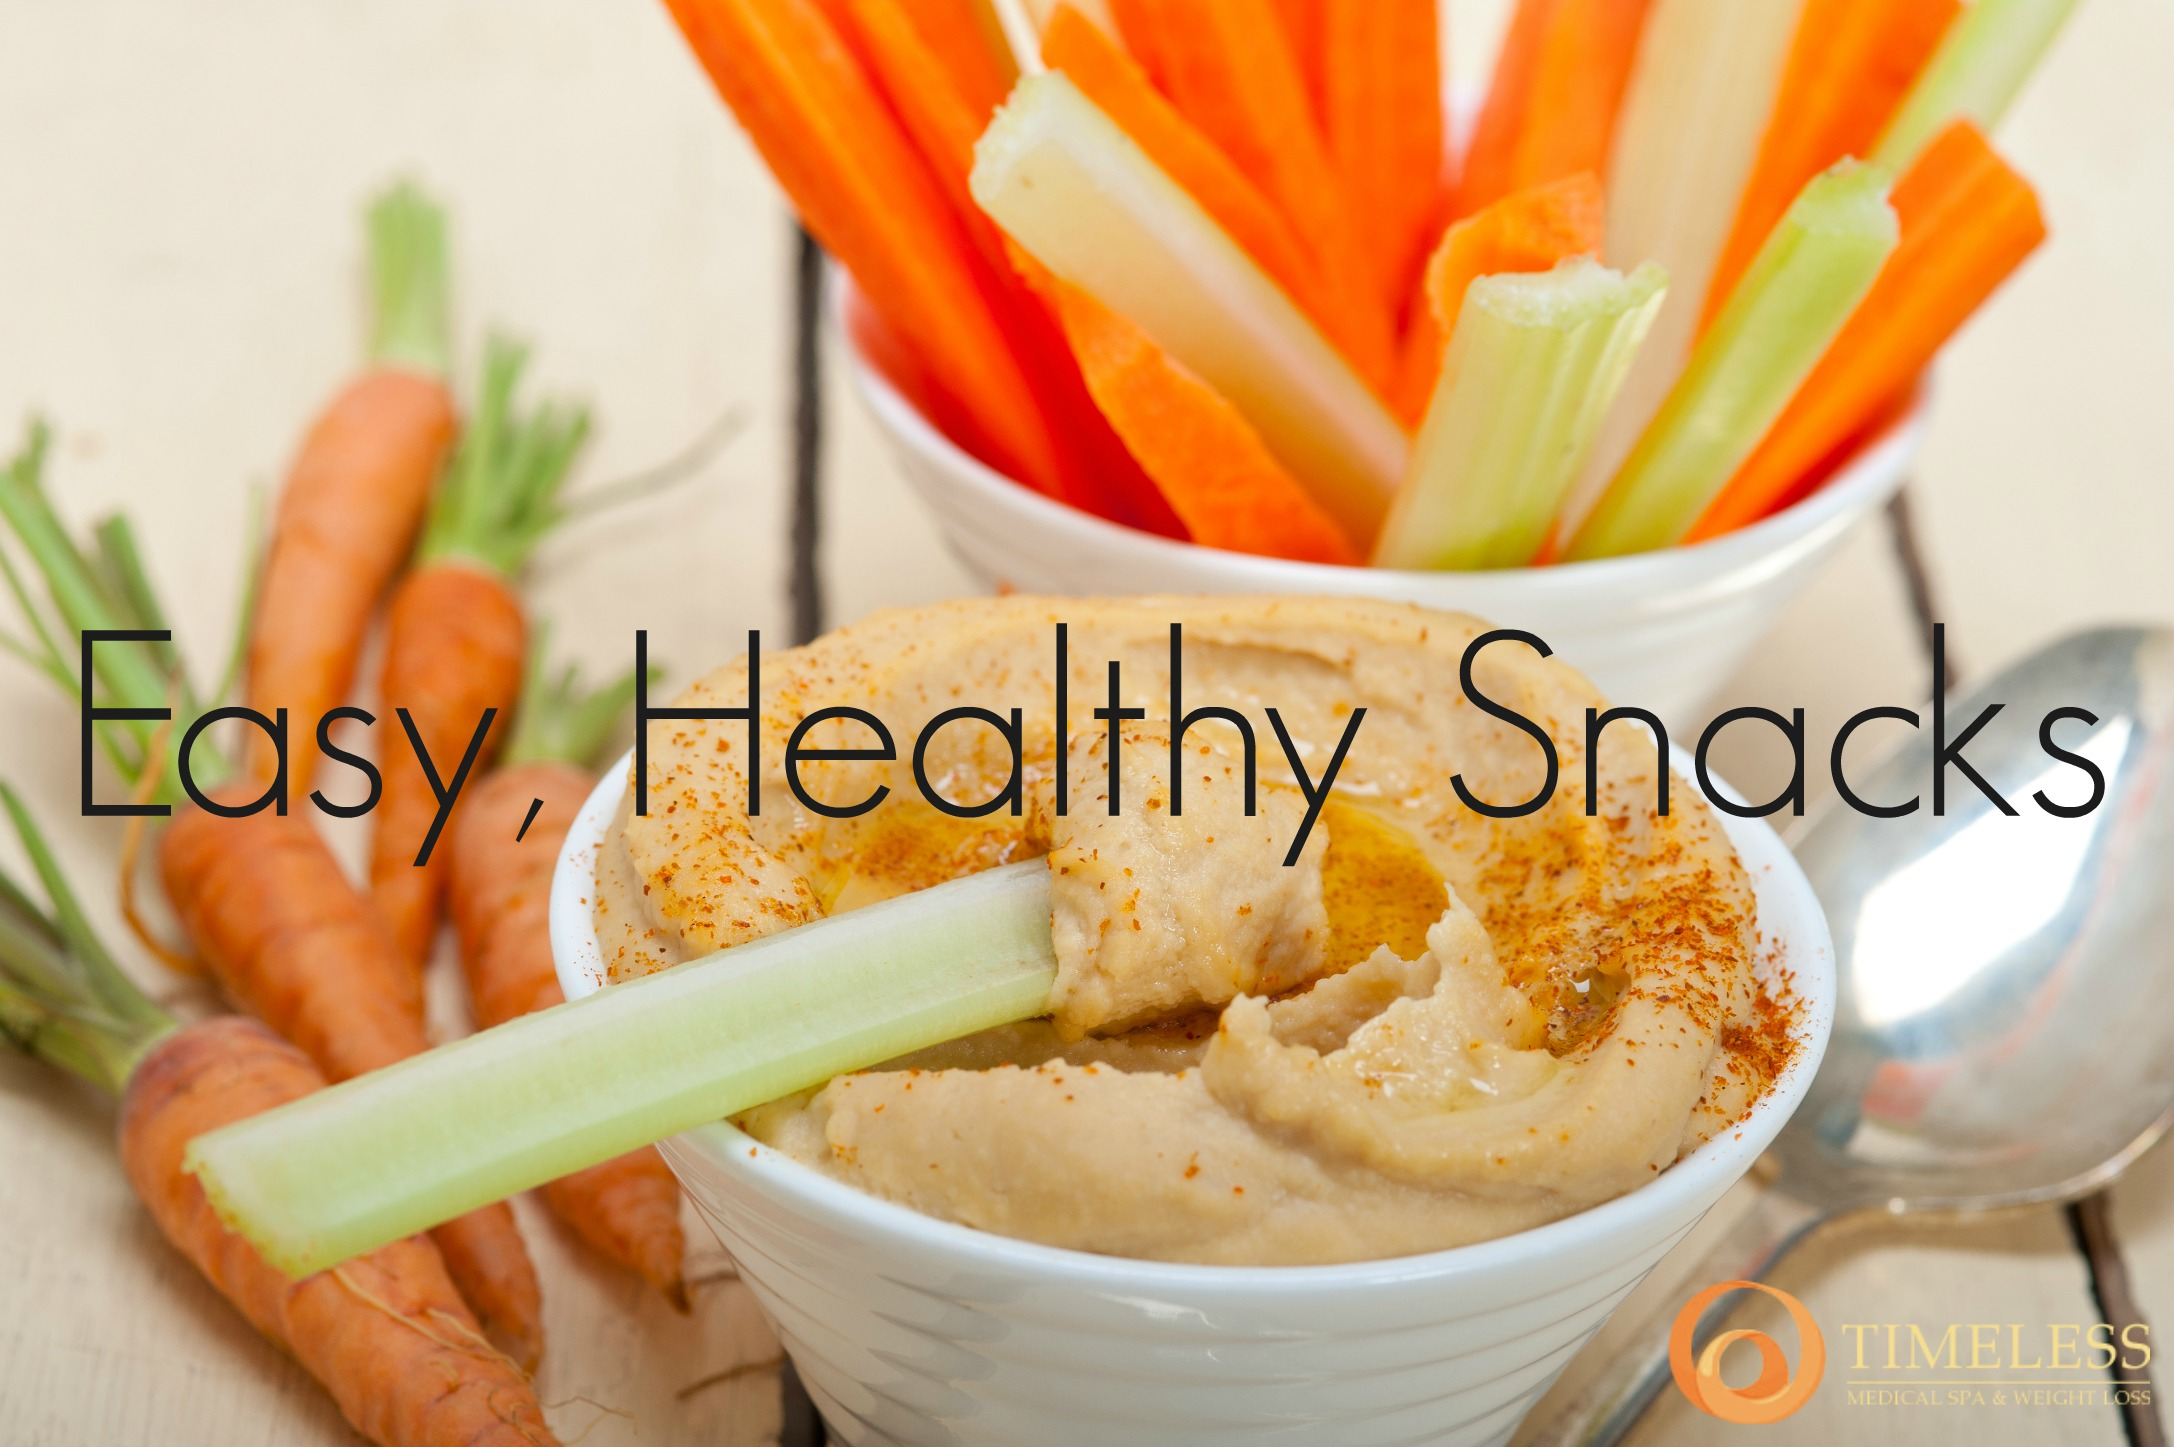 Easy, Healthy Snacks